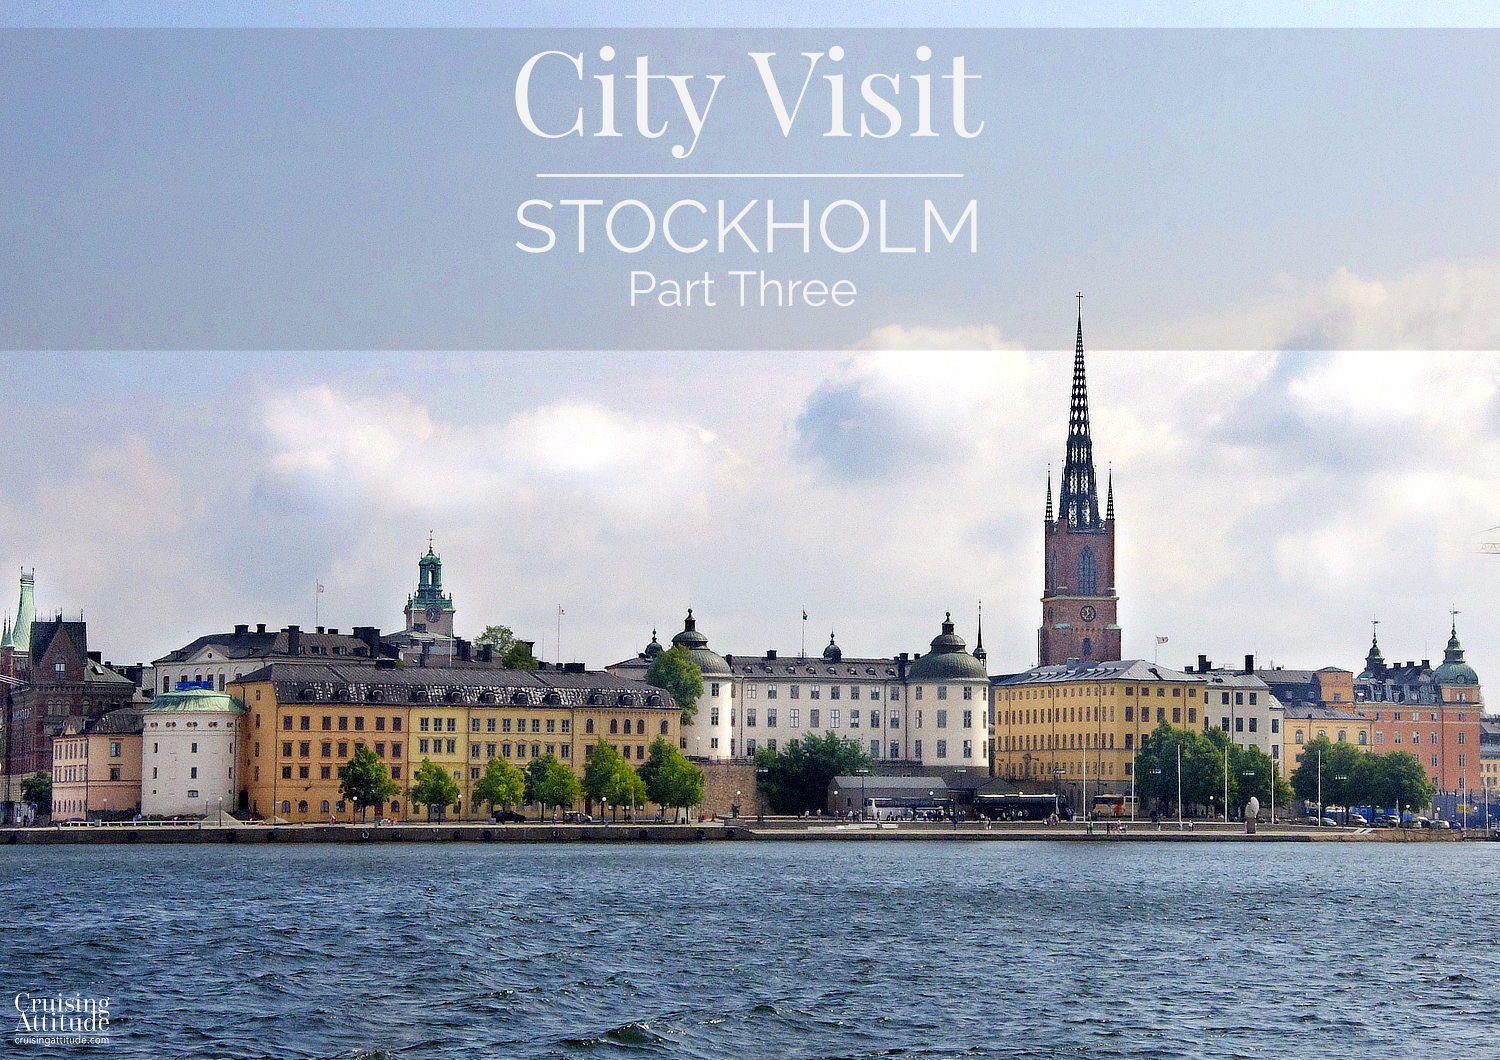 Stockholm City Visit - Cruising Attitude Sailing Blog | Discovery 55